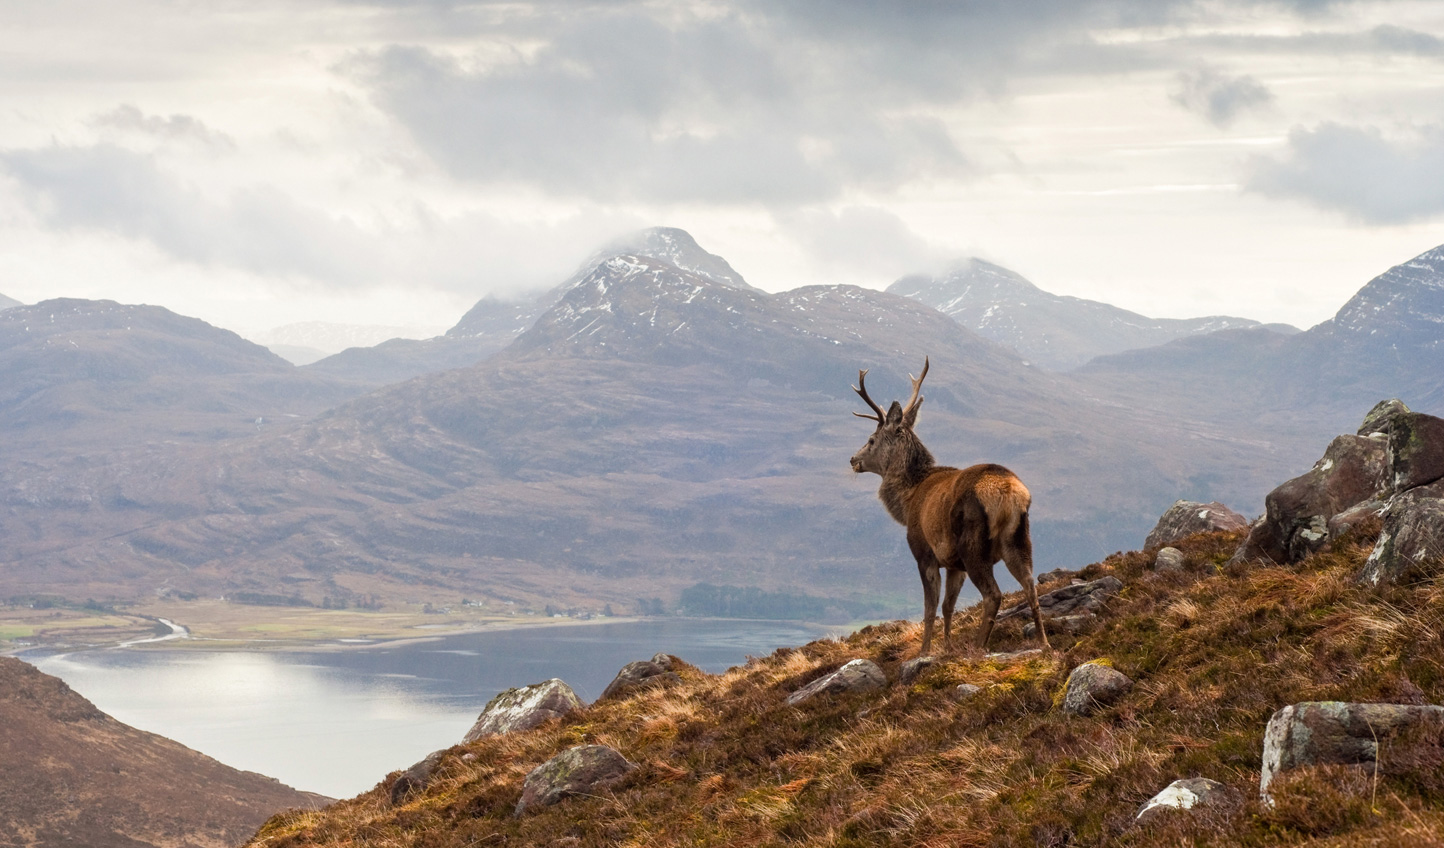 Head up into the highlands and discover stunning views and majestic wildlife